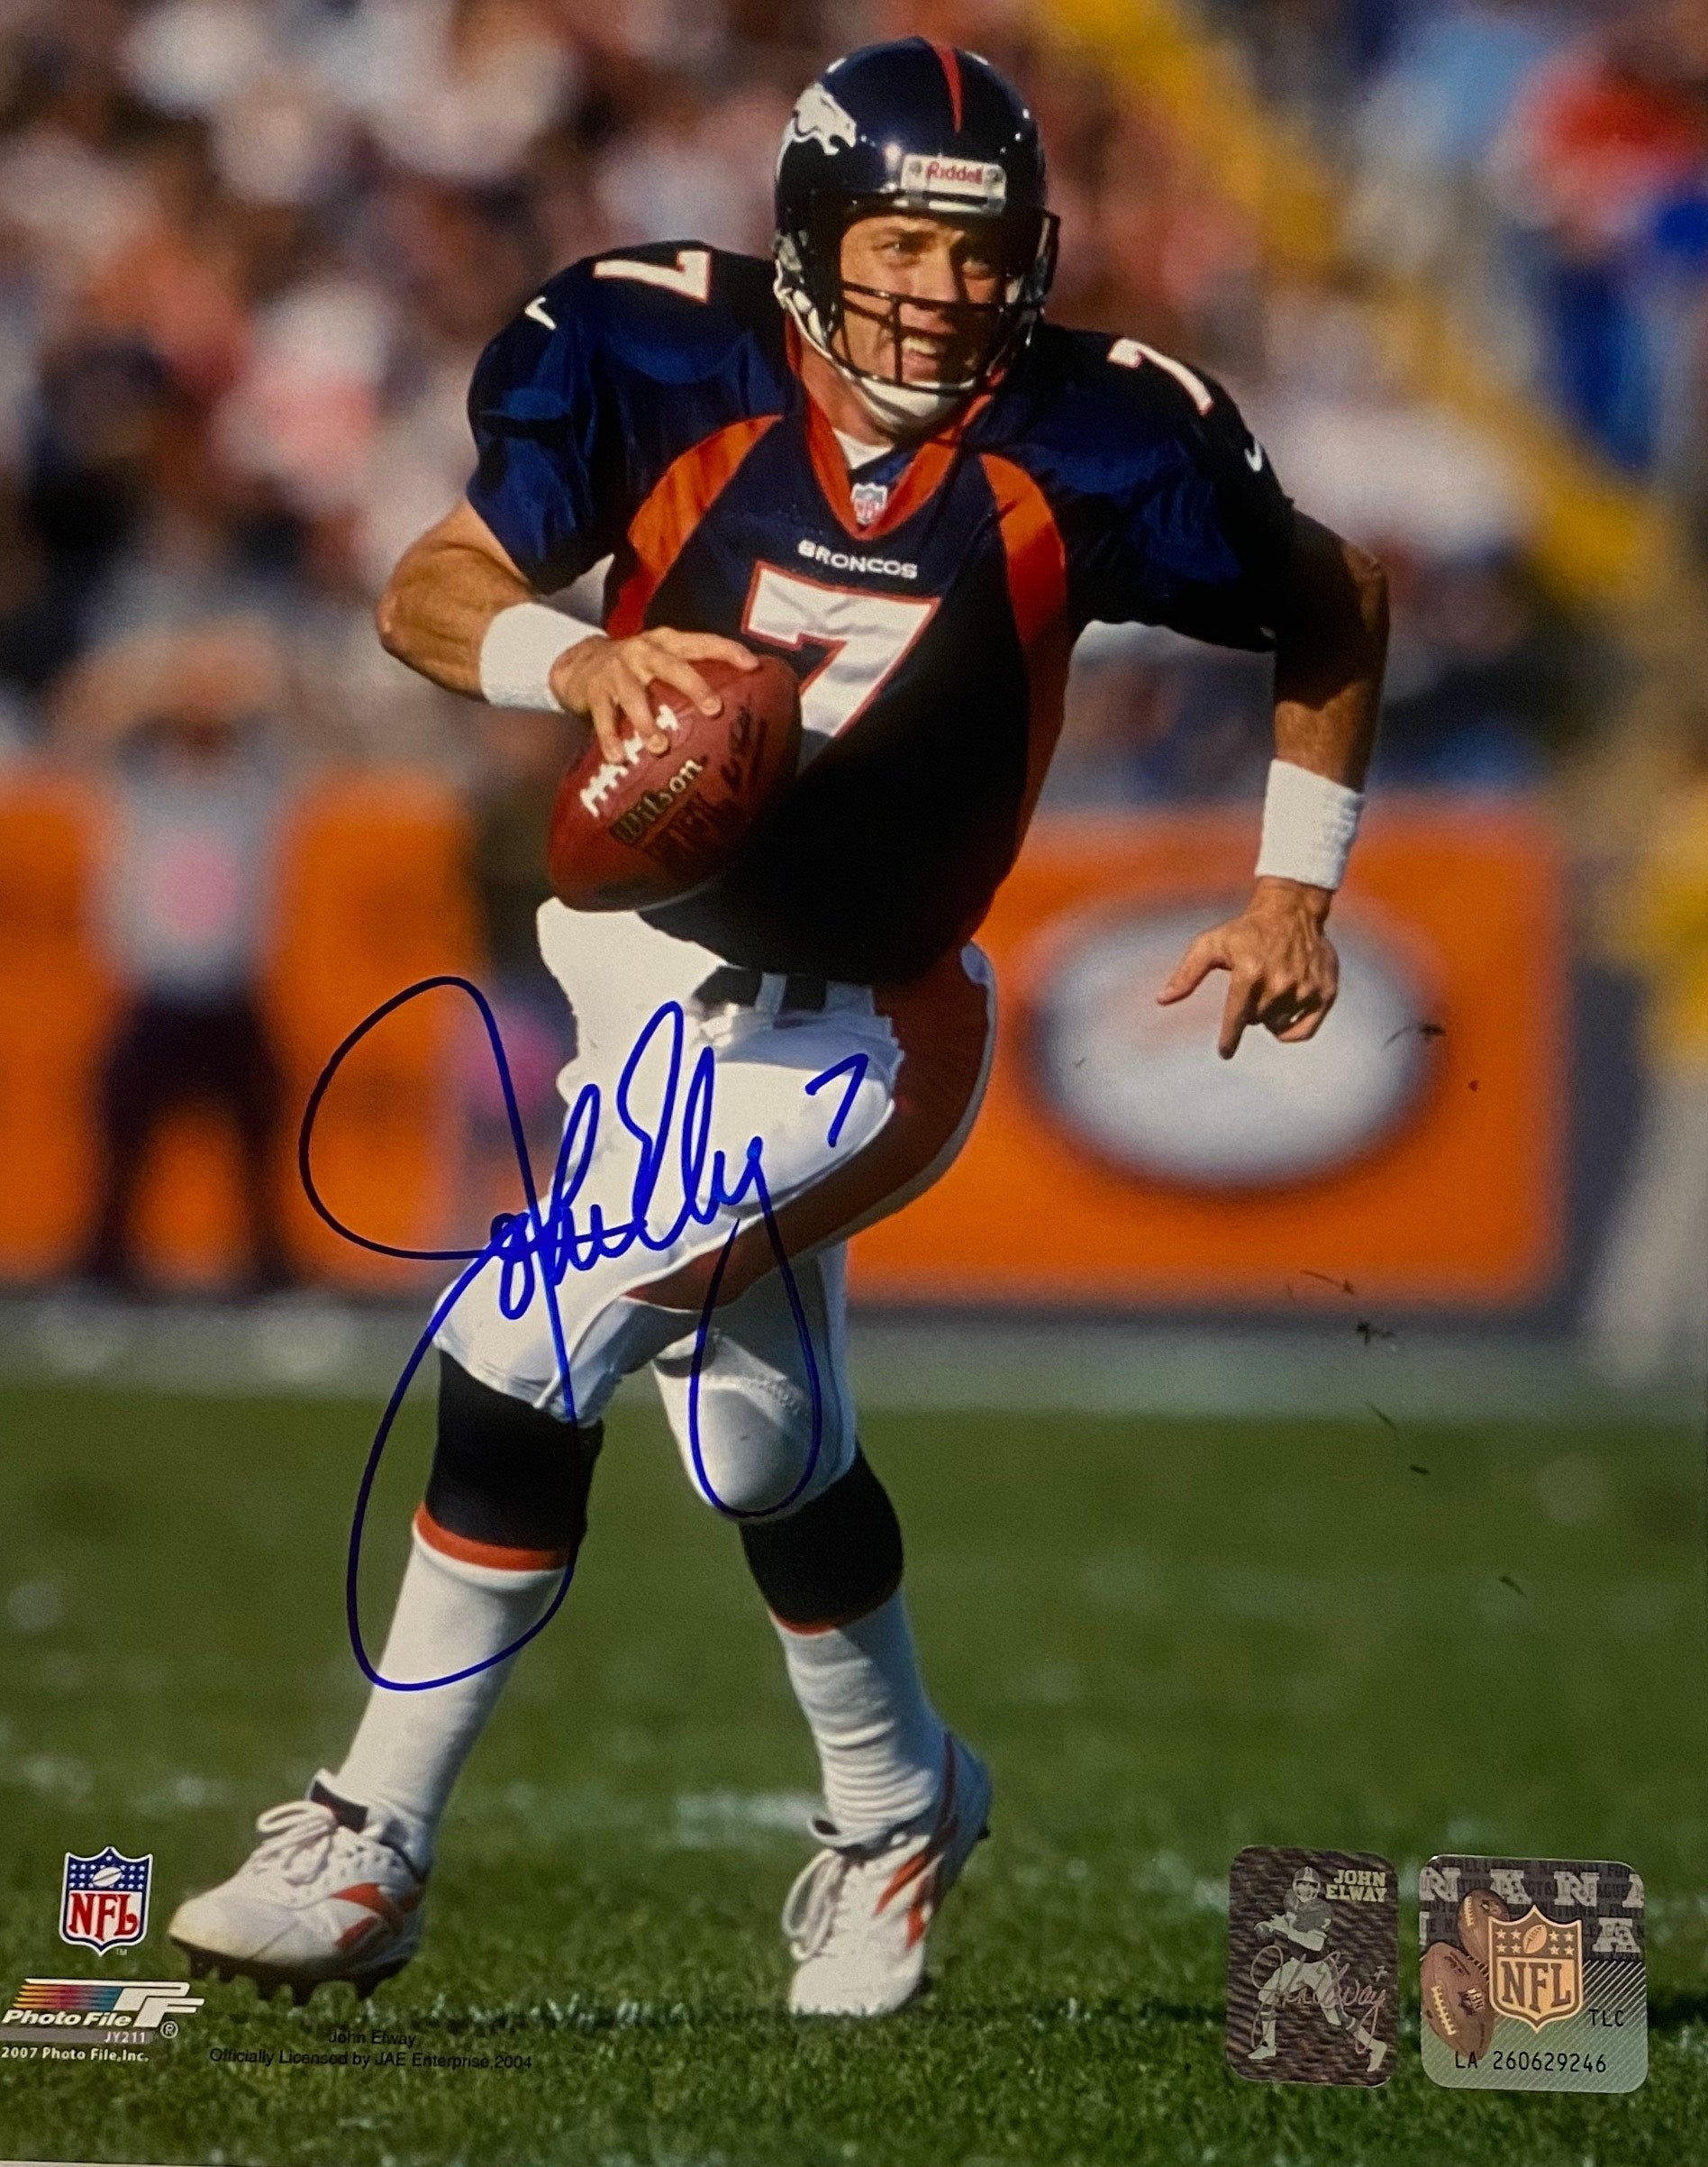 John Elway Autographed Signed 8x10 Photo w/ Hologram